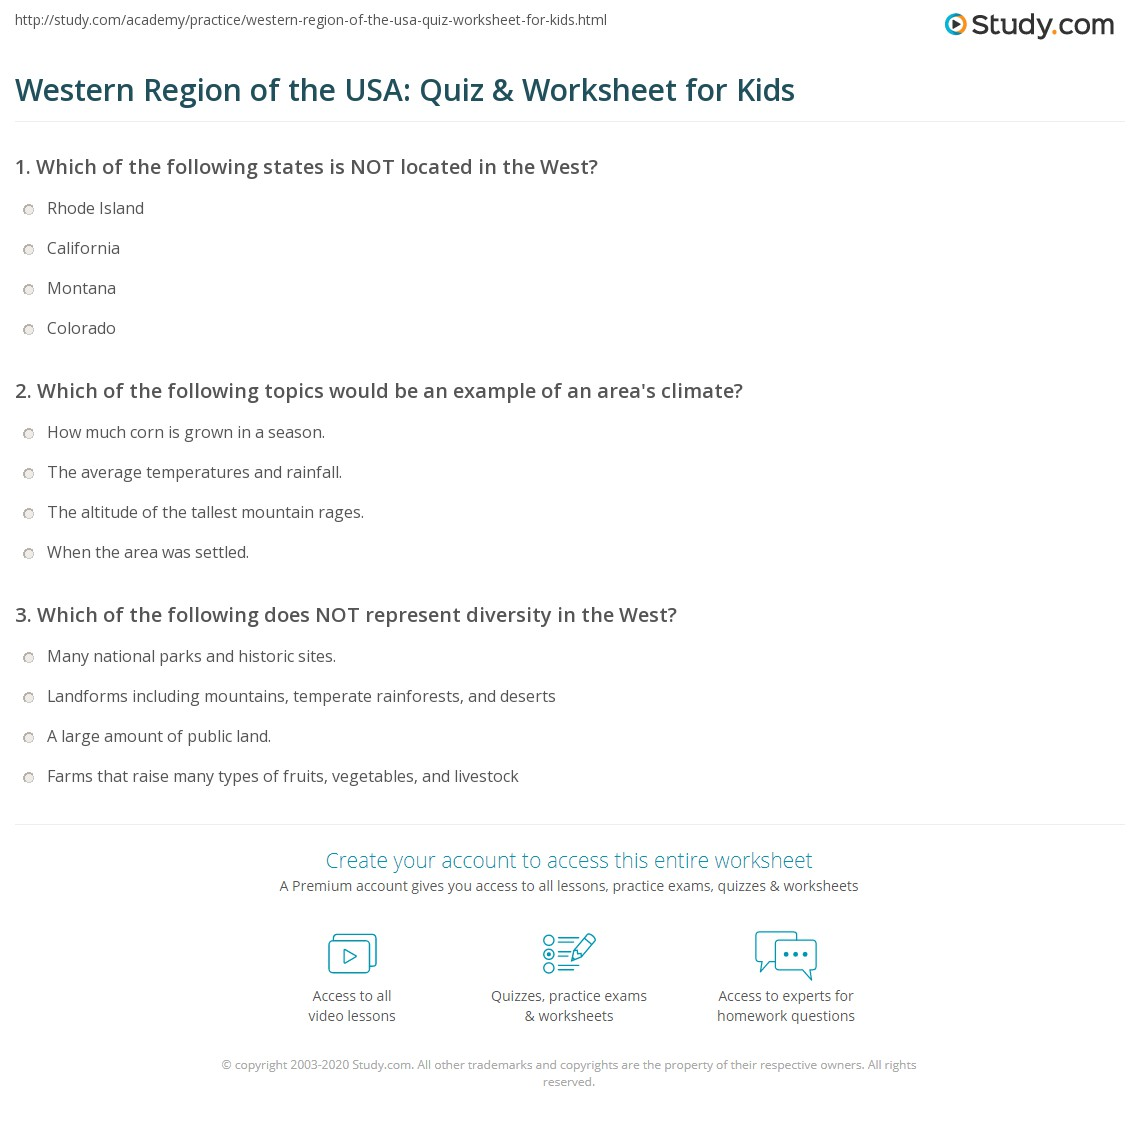 Western Region Of The USA Quiz Worksheet For Kids Studycom - Facts about the west region